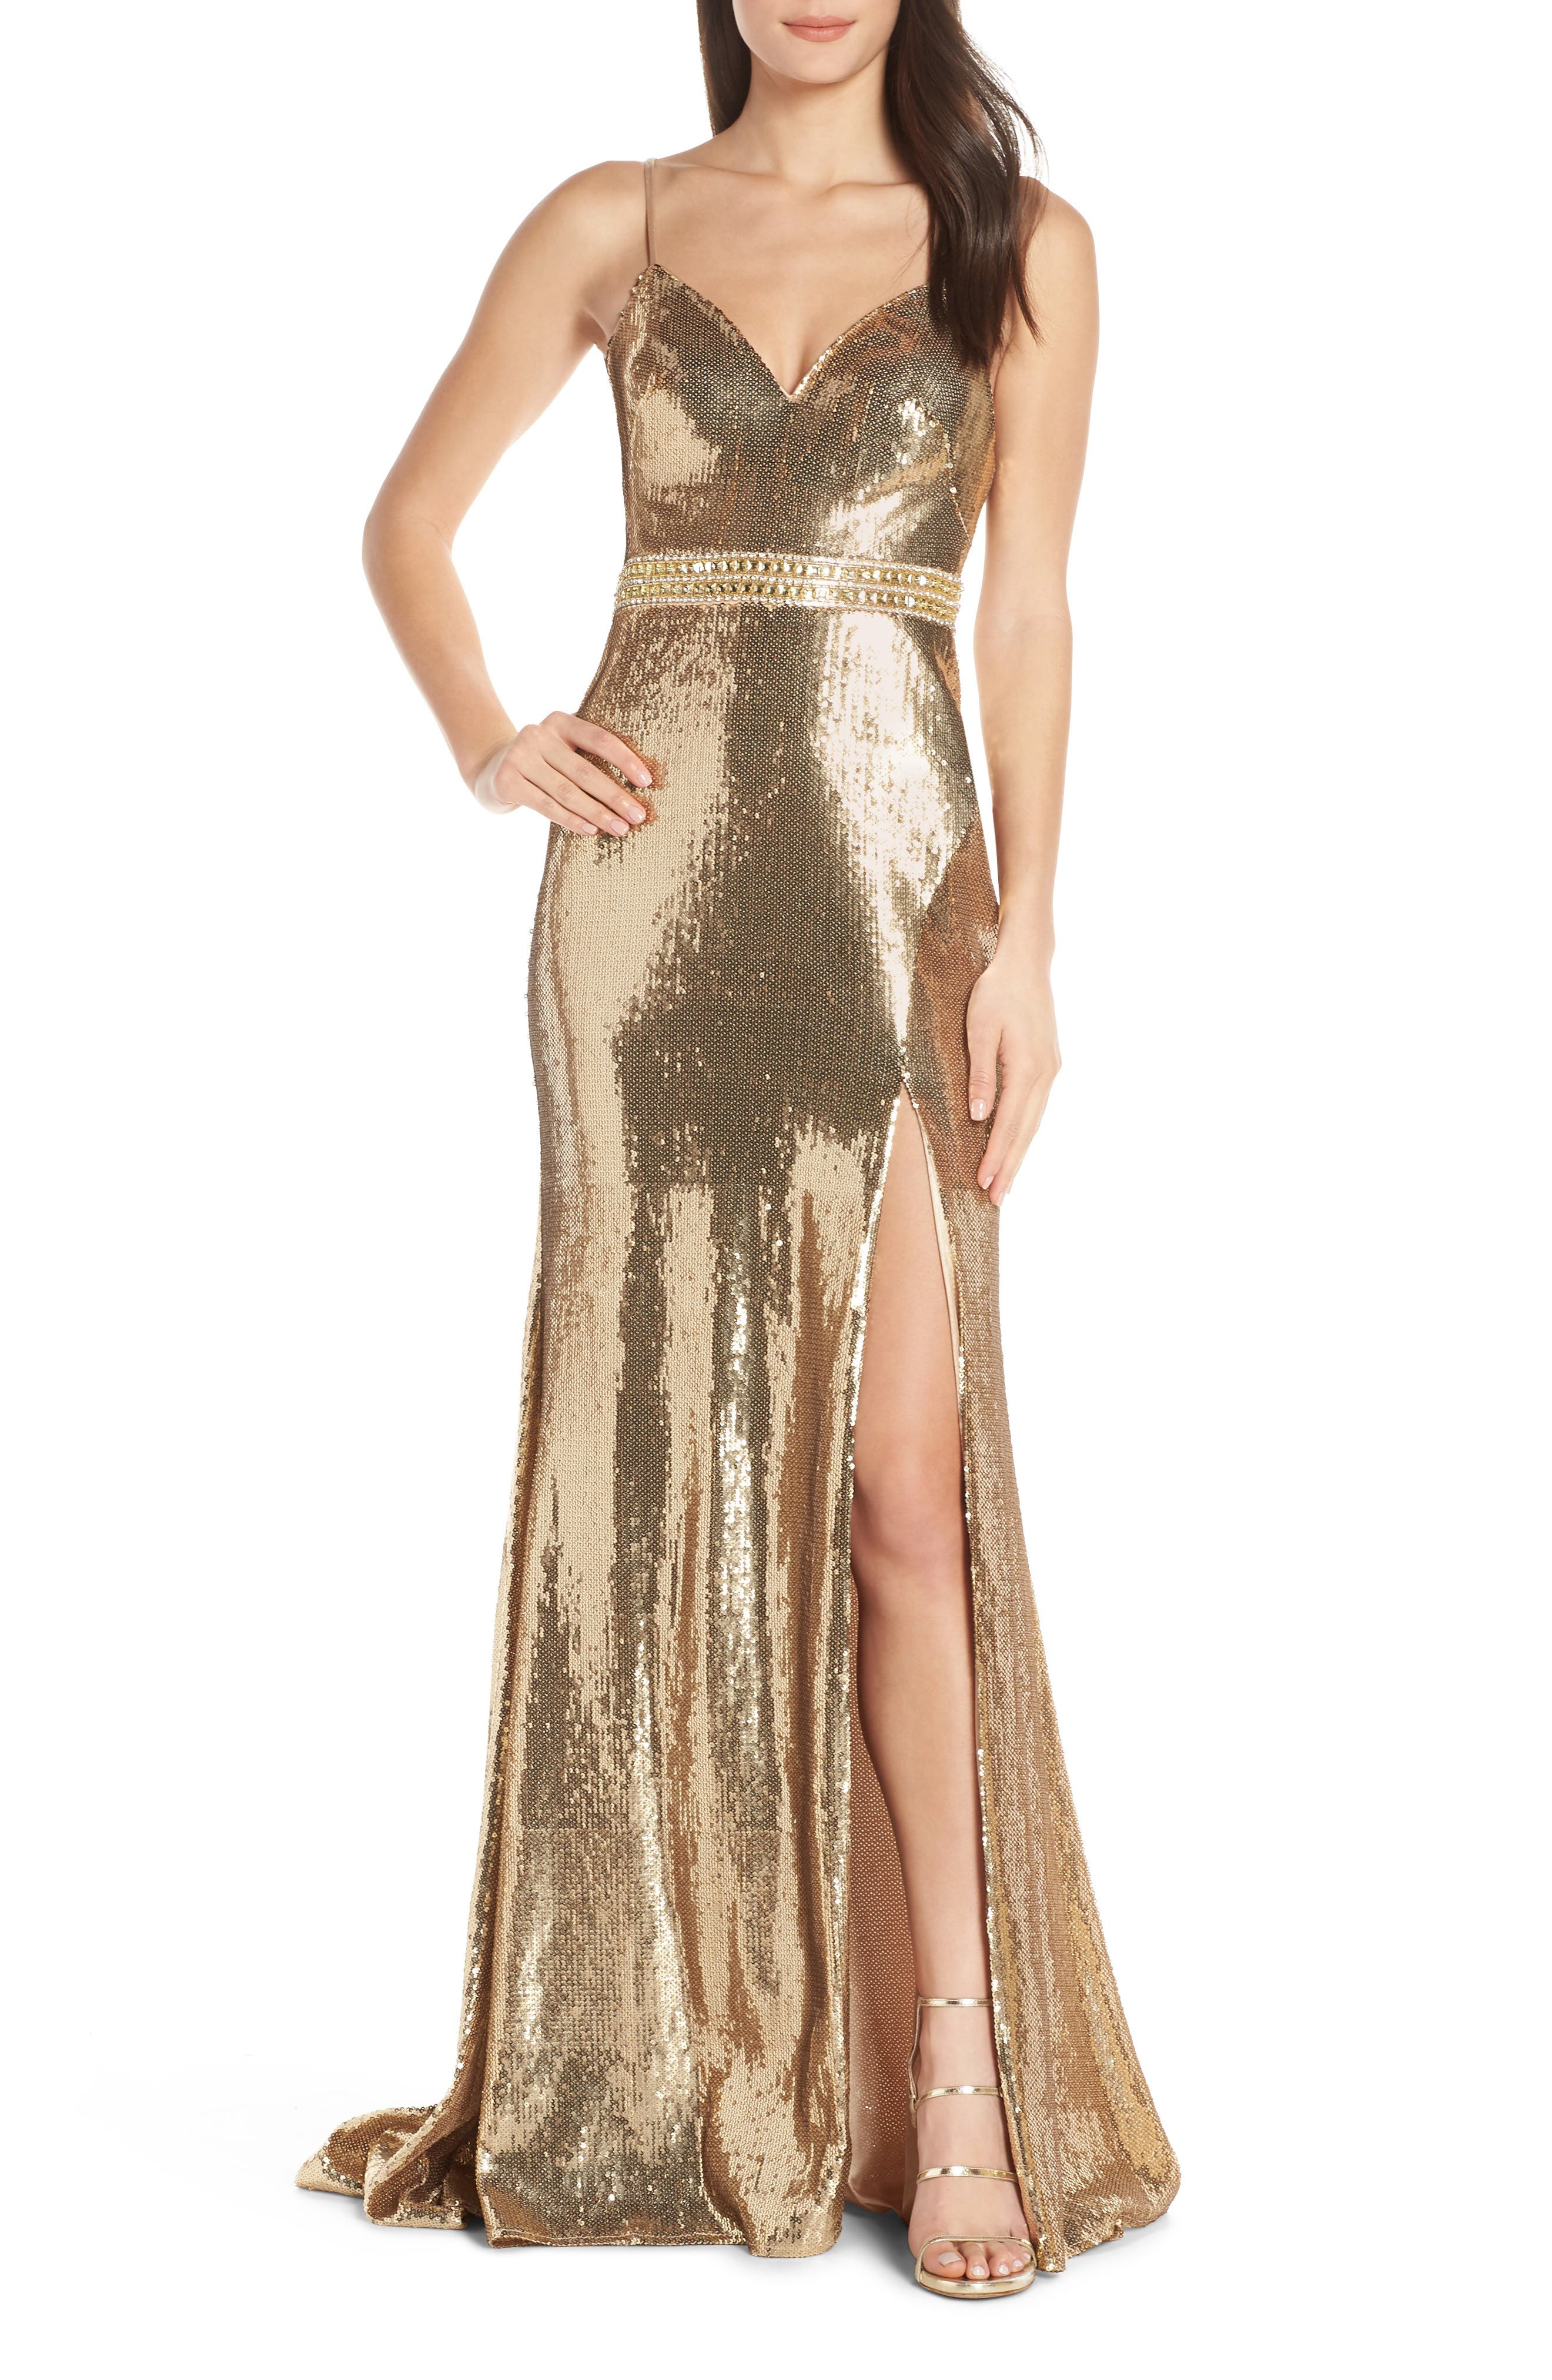 70s Prom, Formal, Evening, Party Dresses Womens MAC Duggal Embellished Bodice Metallic Evening Dress $398.00 AT vintagedancer.com